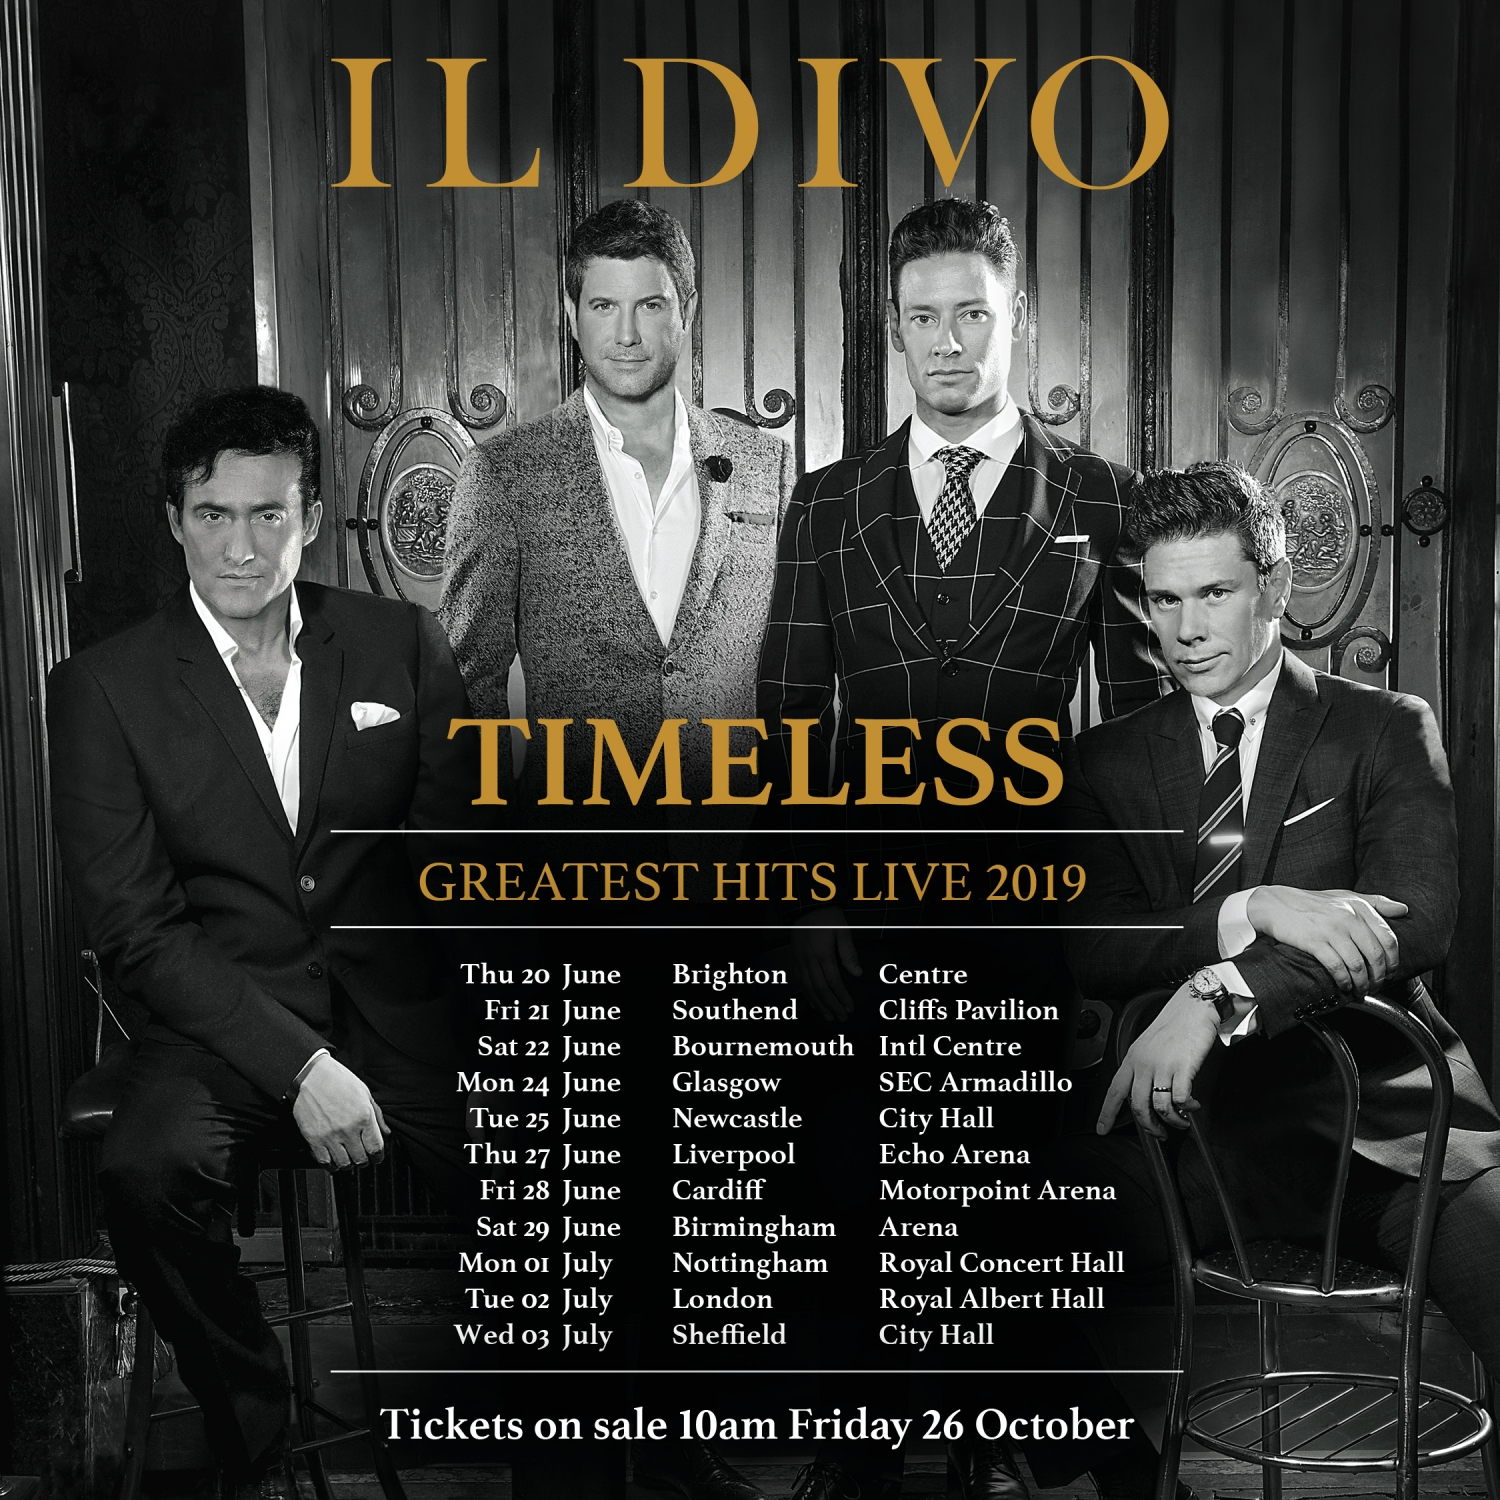 Il divo timeless greatest hits live 2019 motorpoint - Il divo tickets ...